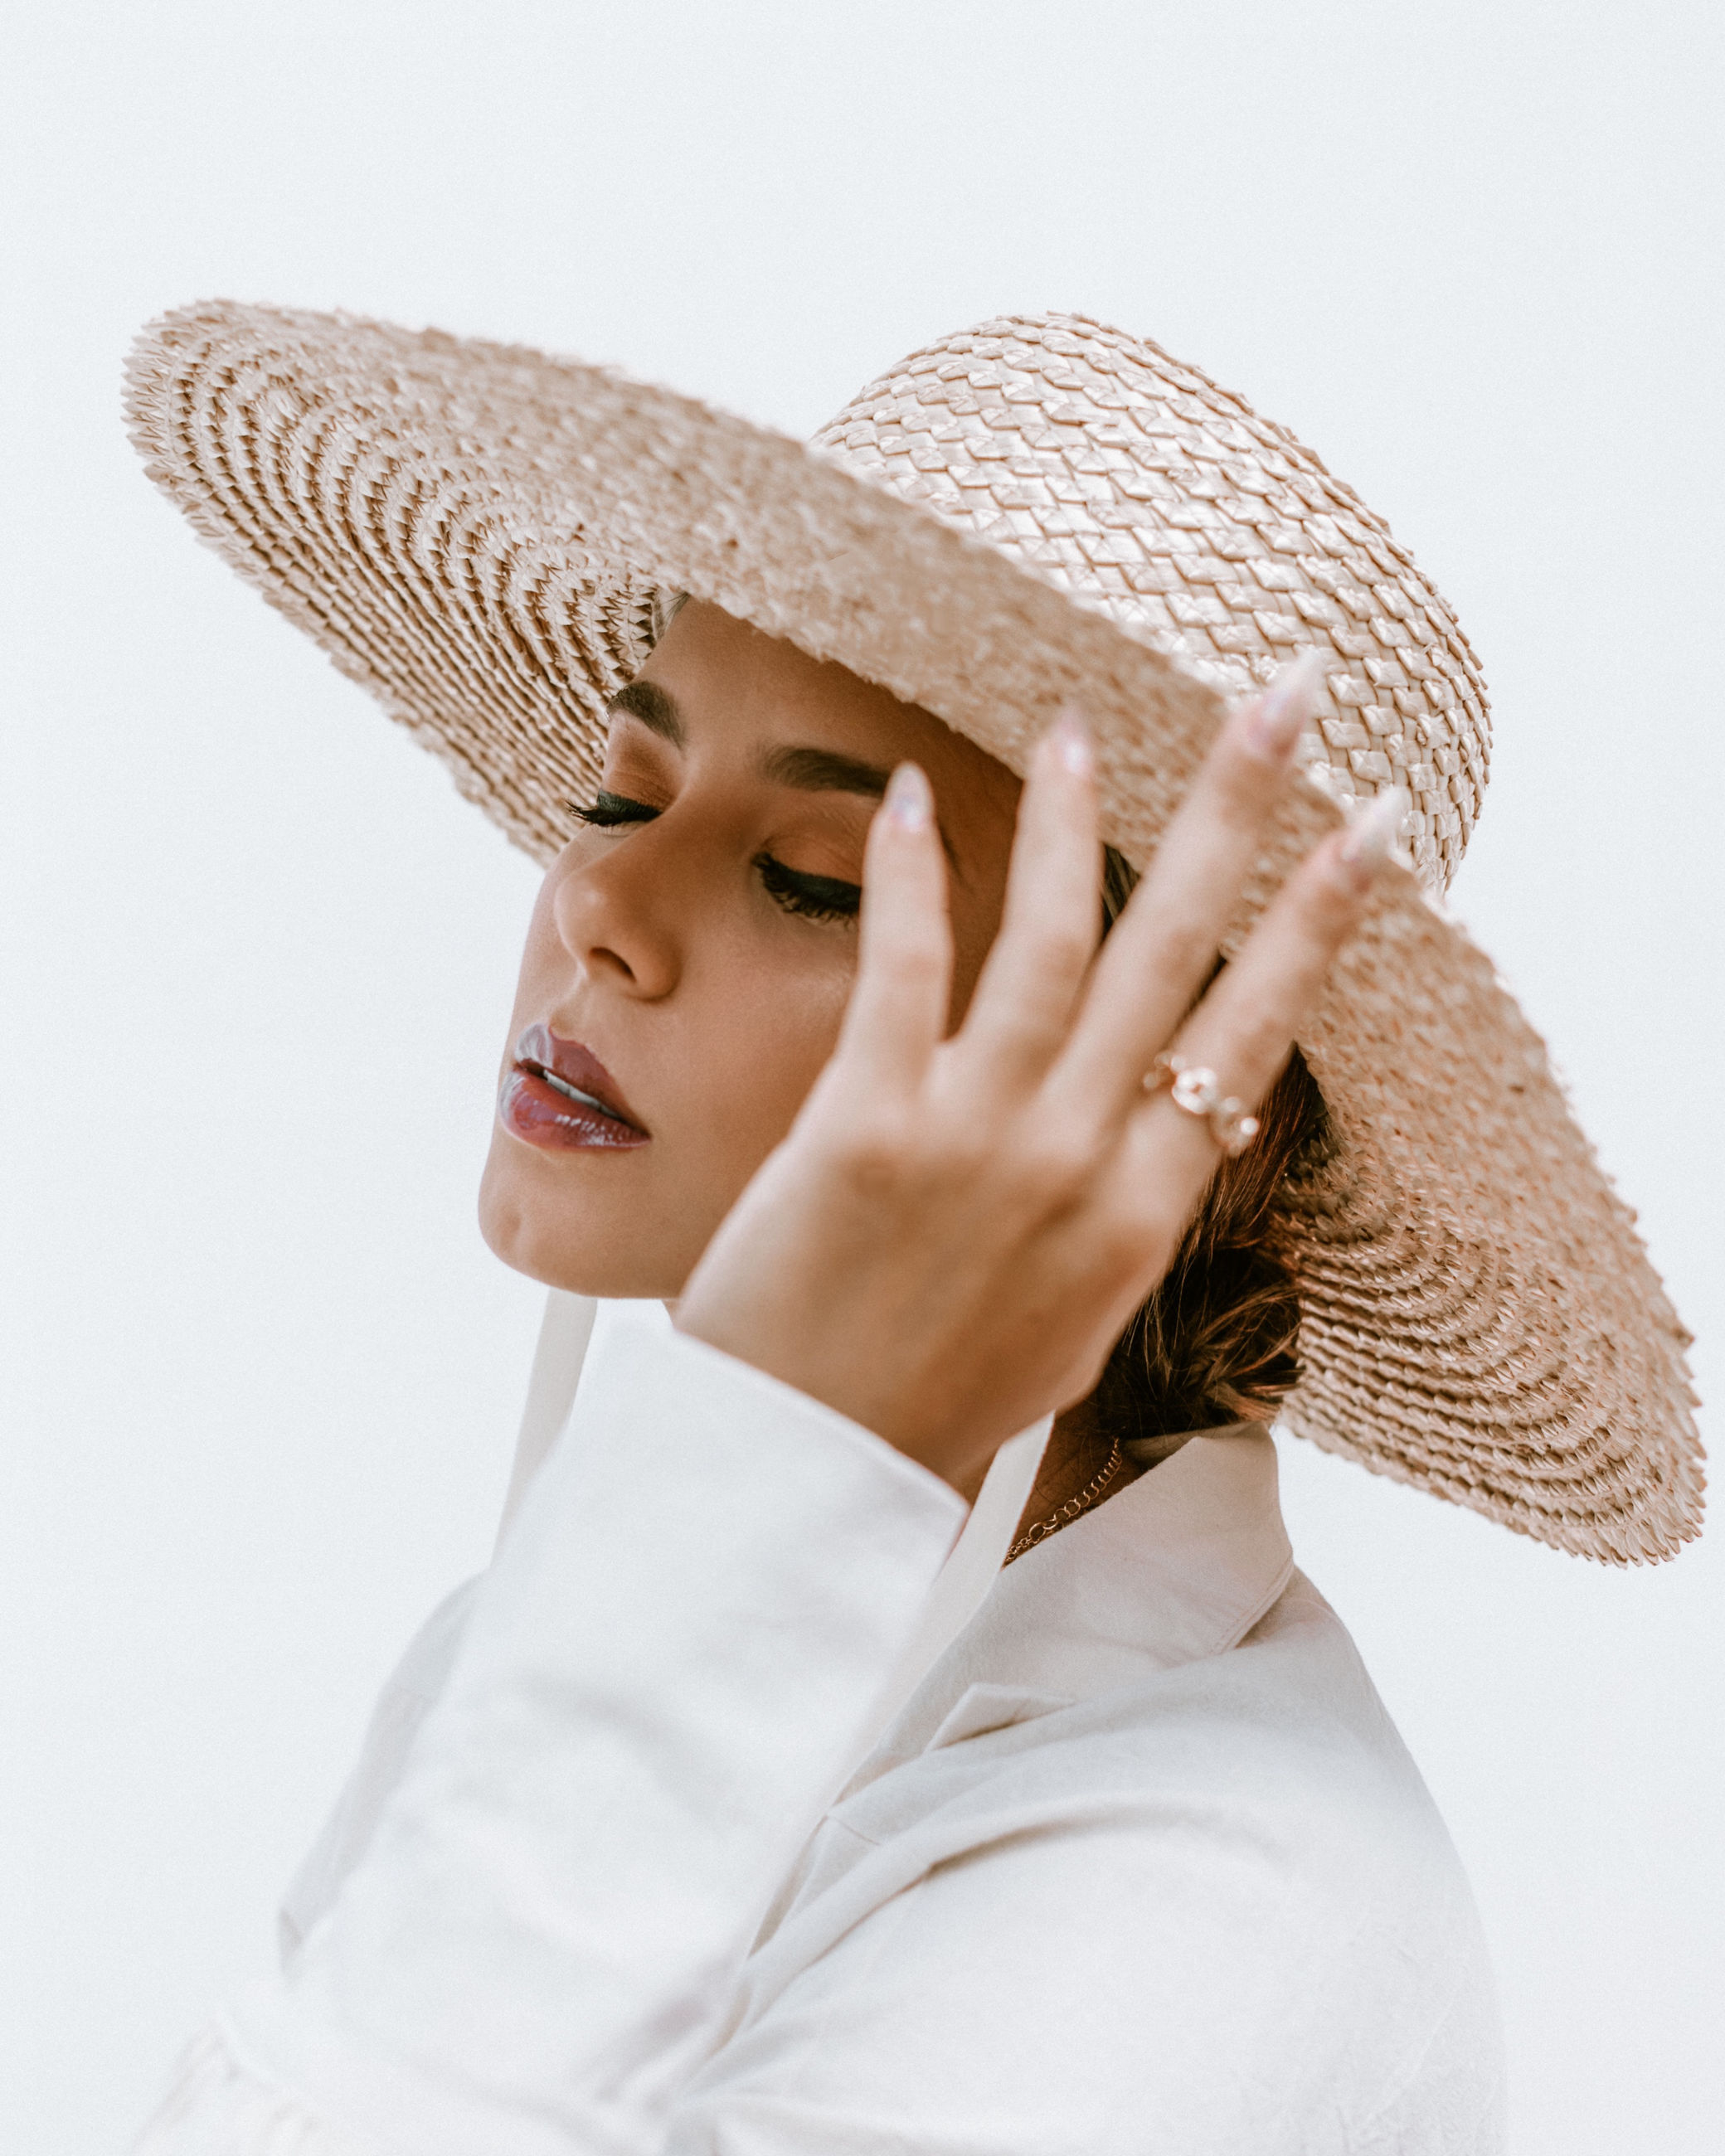 one person, hat, women, adult, portrait, clothing, fashion accessory, cap, studio shot, young adult, sun hat, headshot, indoors, straw hat, female, fashion, sombrero, headgear, hand, white background, human face, waist up, looking